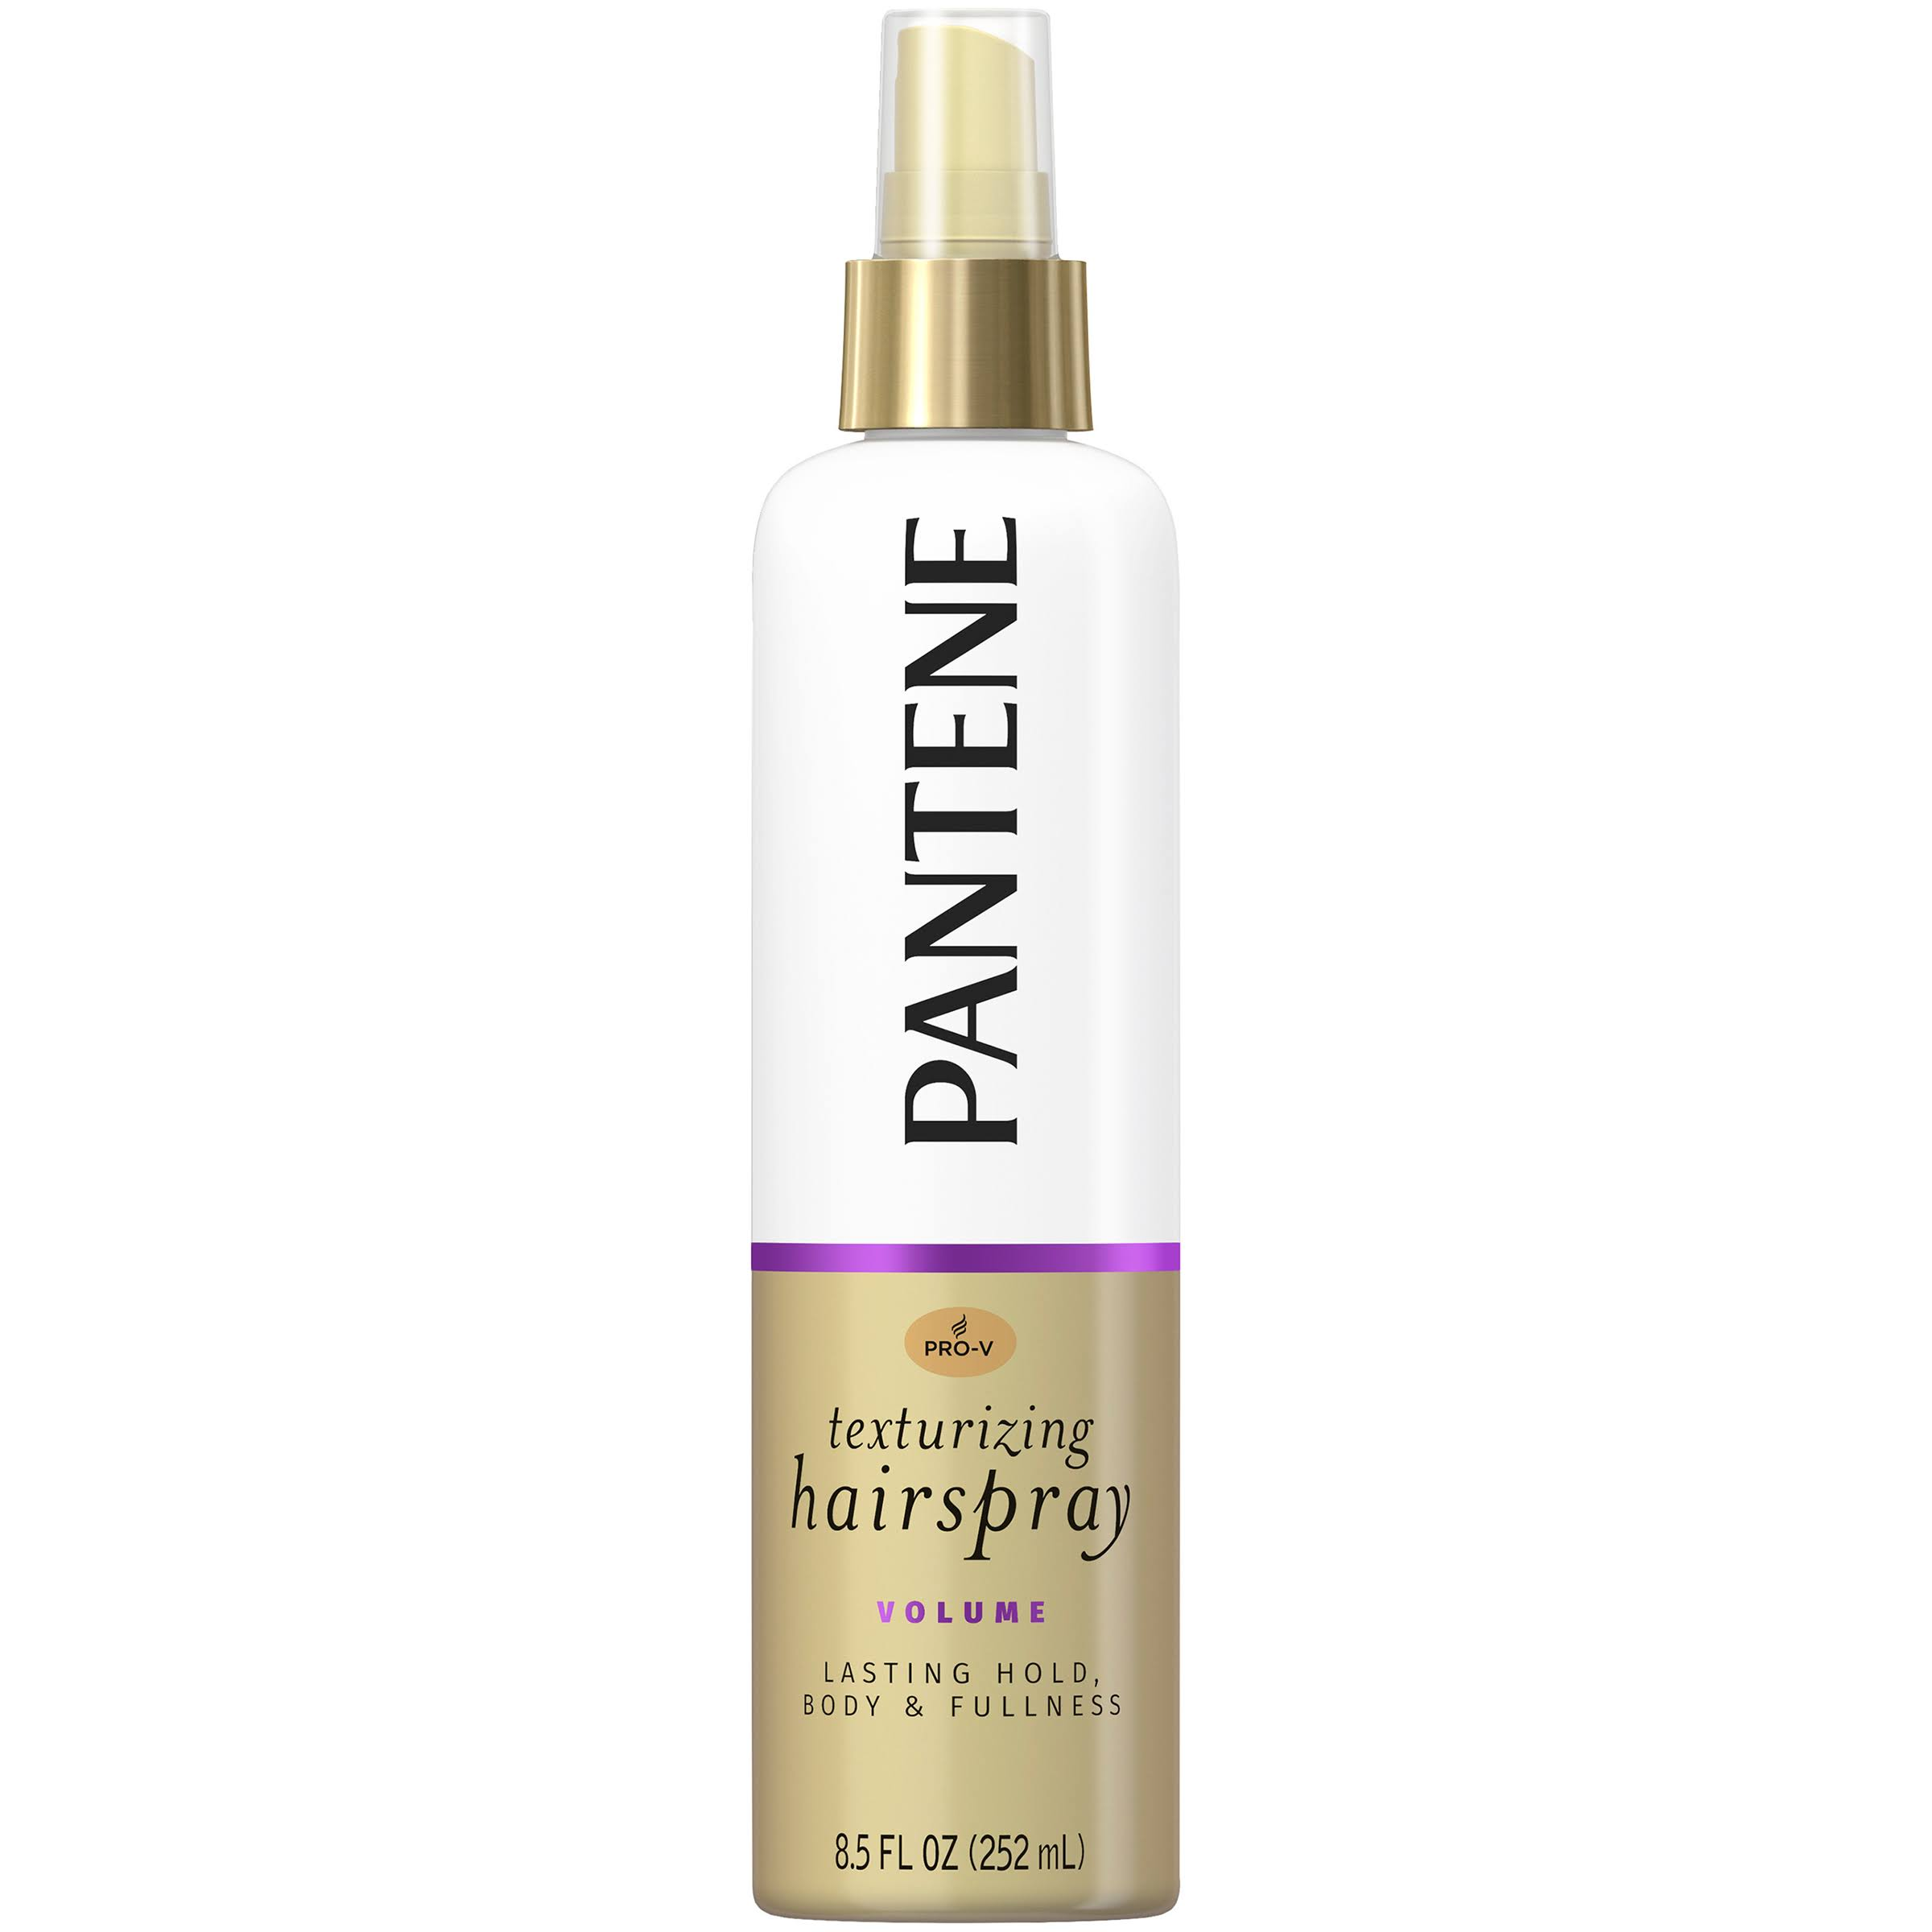 Pantene Pro-V Volume Texturizing Hairspray - 252ml